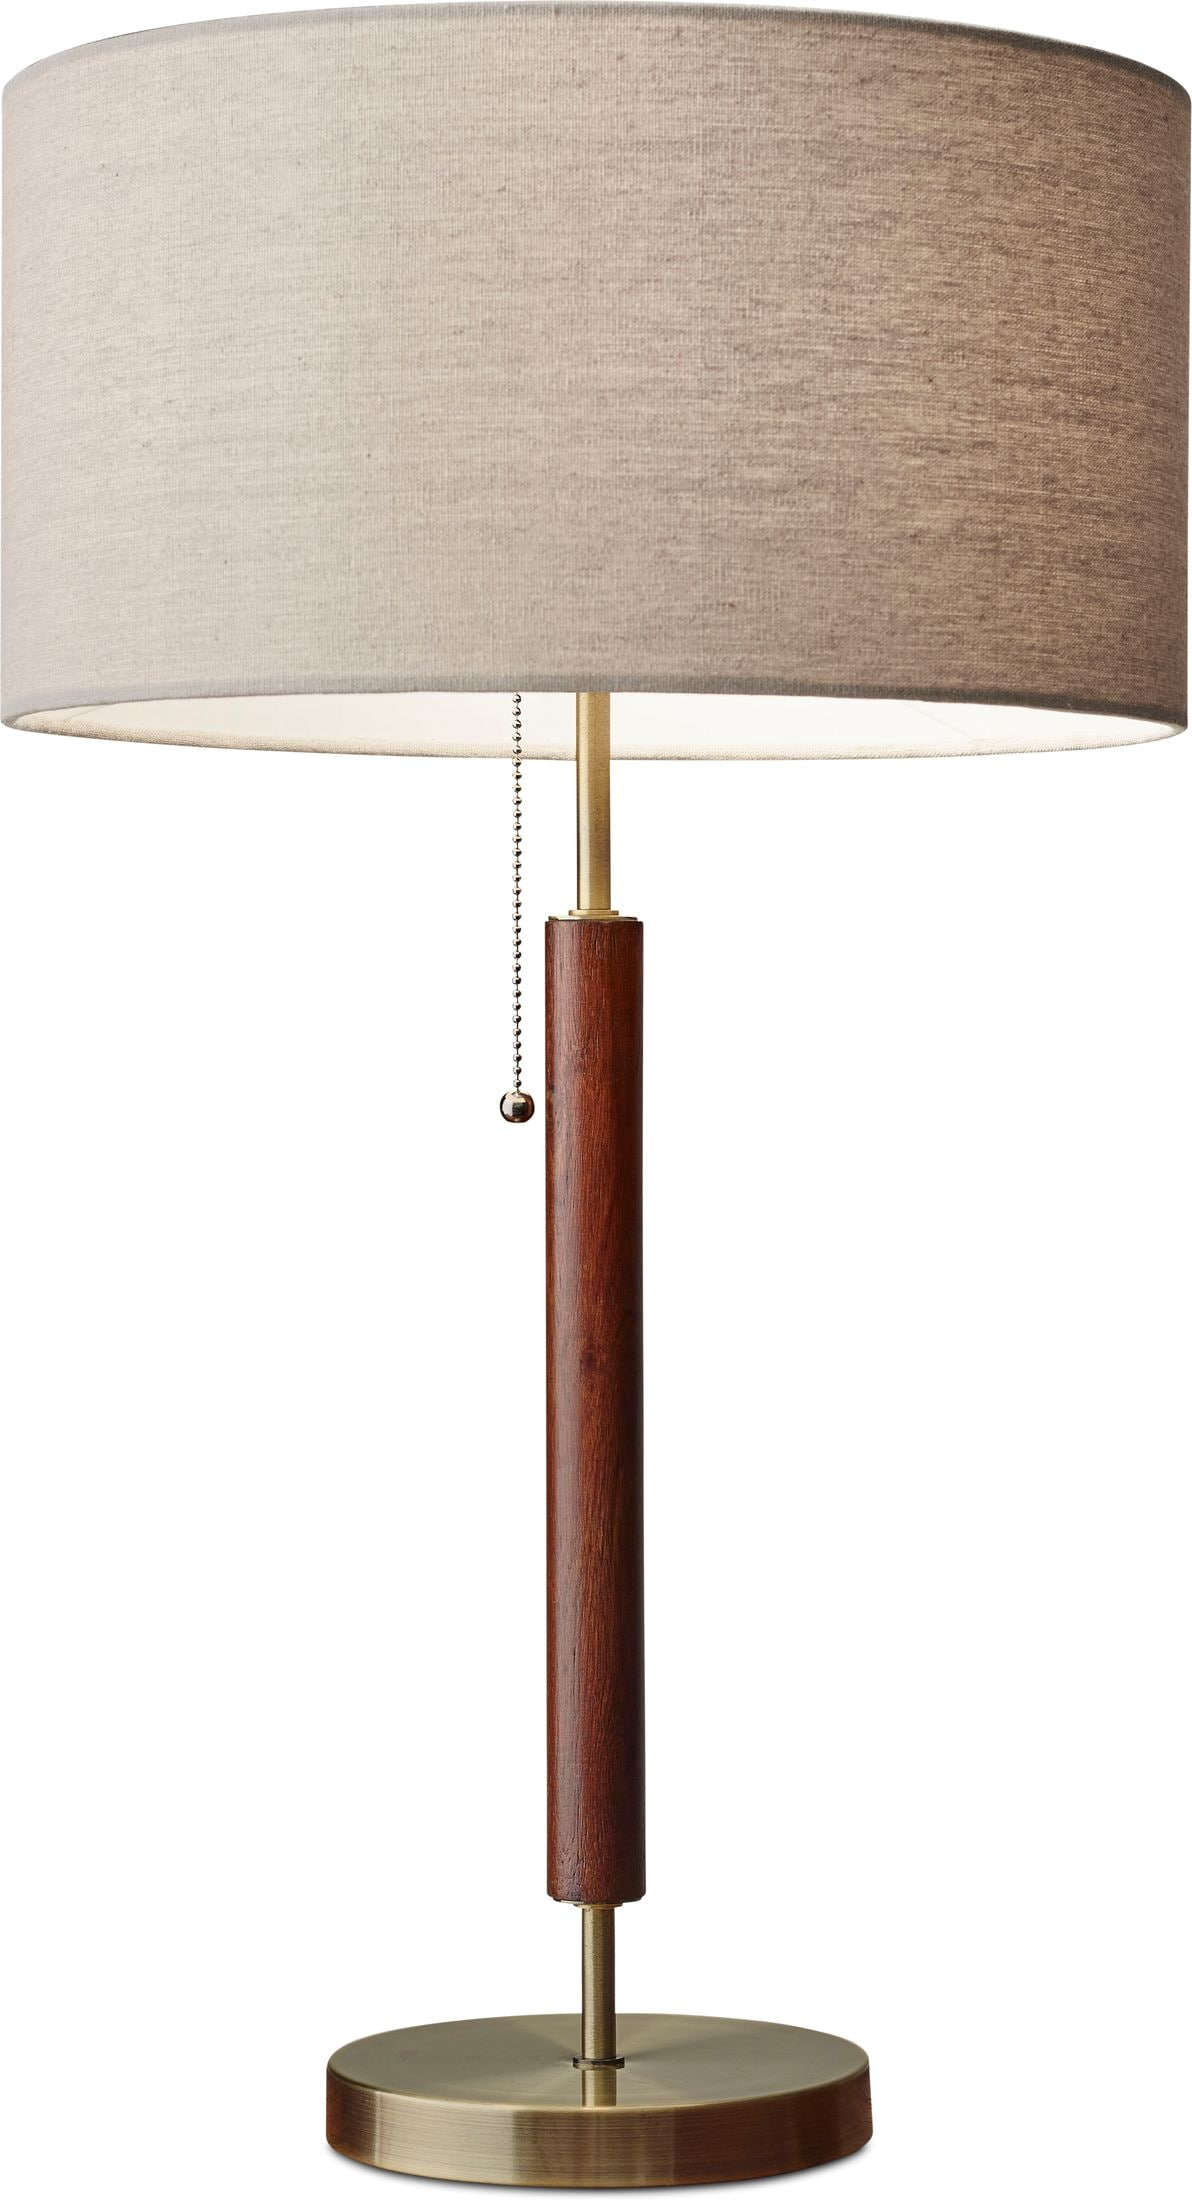 Home Accessories - Hamilton Table Lamp